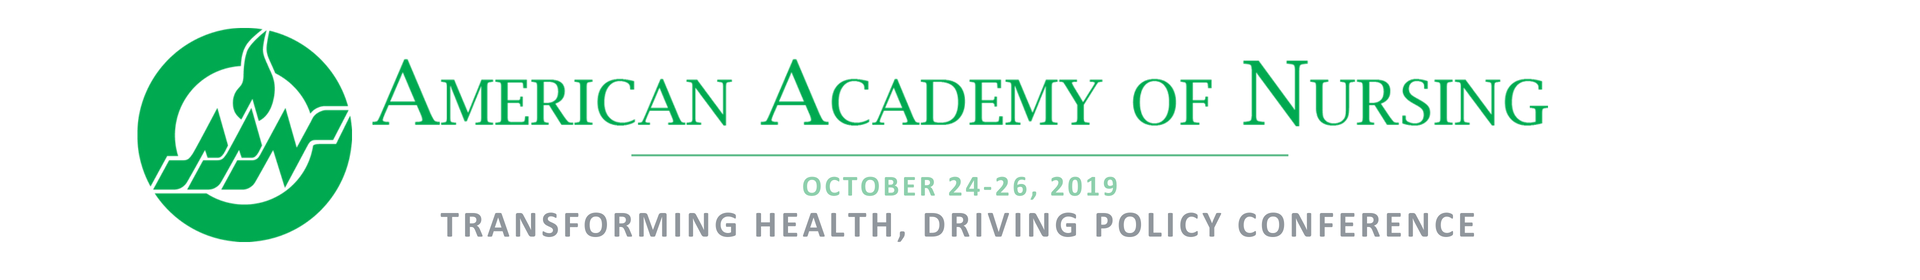 Academy's 2019 Transforming Health Driving Policy Conference Event Banner